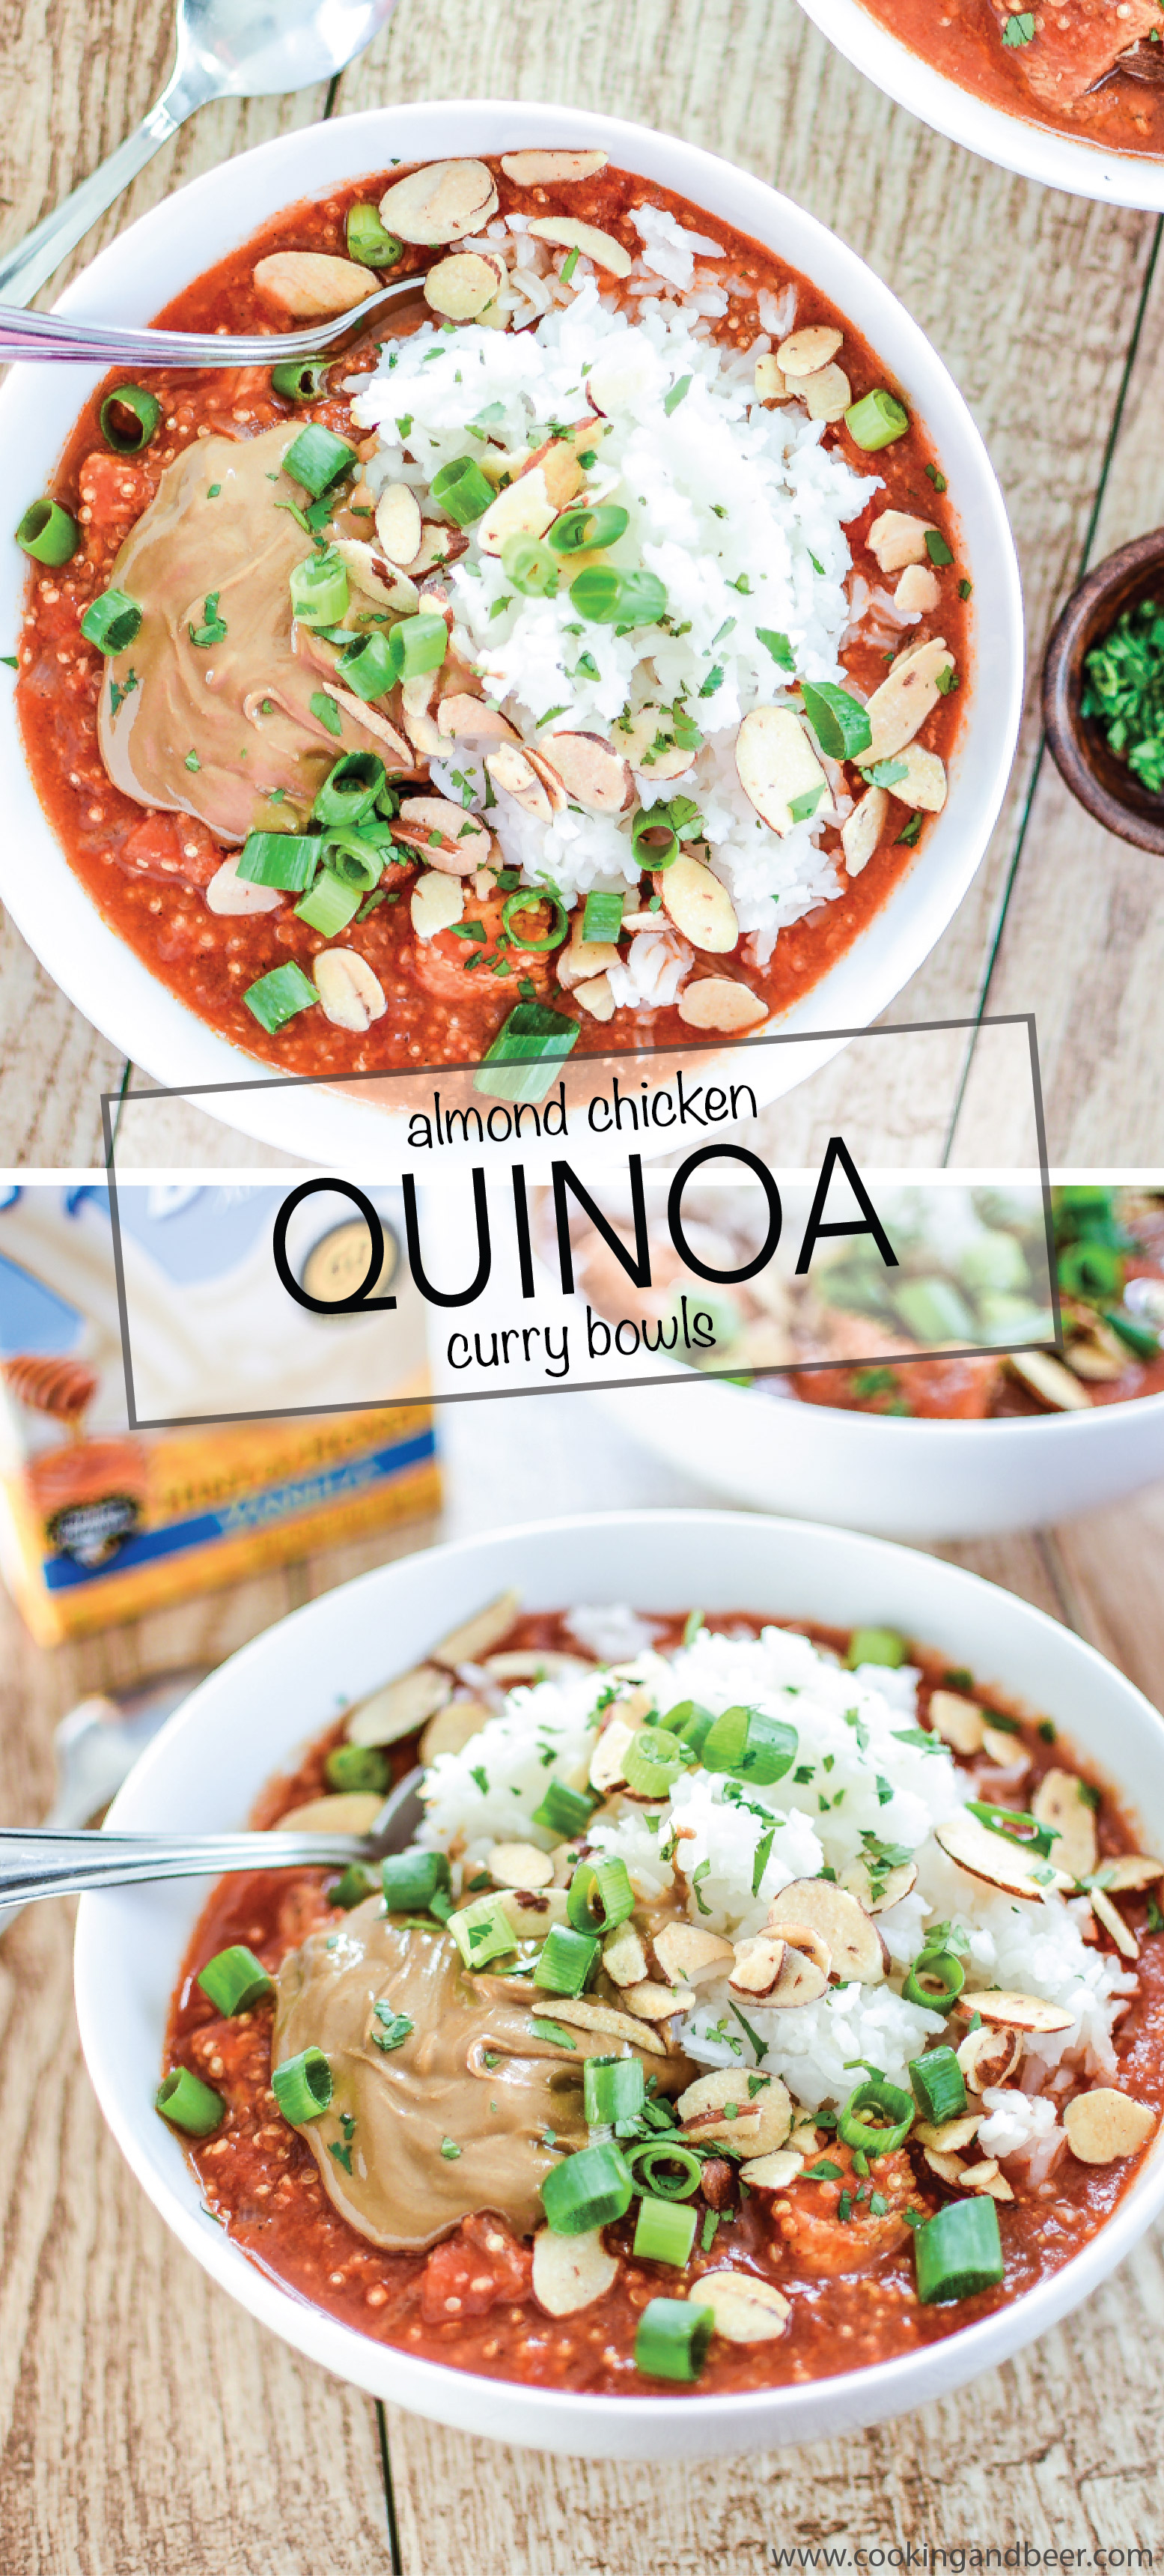 Almond Chicken Quinoa Curry Bowls is a weeknight dinner recipe to get excited about! | www.cookingandbeer.com